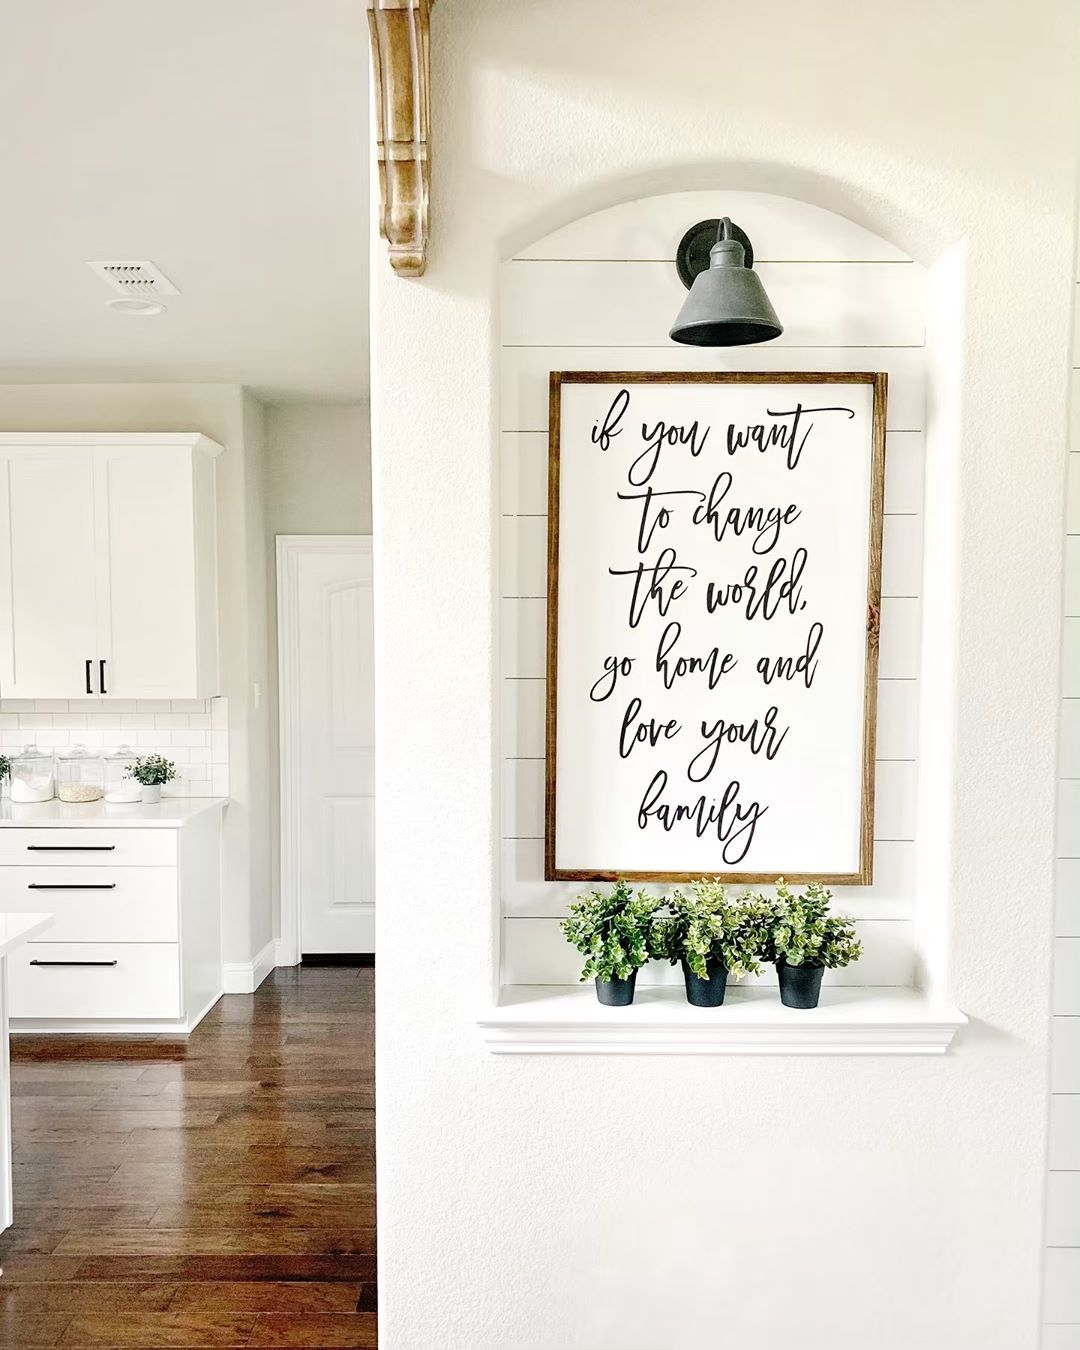 The Bravo Homestead Everyone S Home Should Have One Spot That Has An Inspirational Quote So Whenever You Are Having A Home Home Decor Items Home Decor